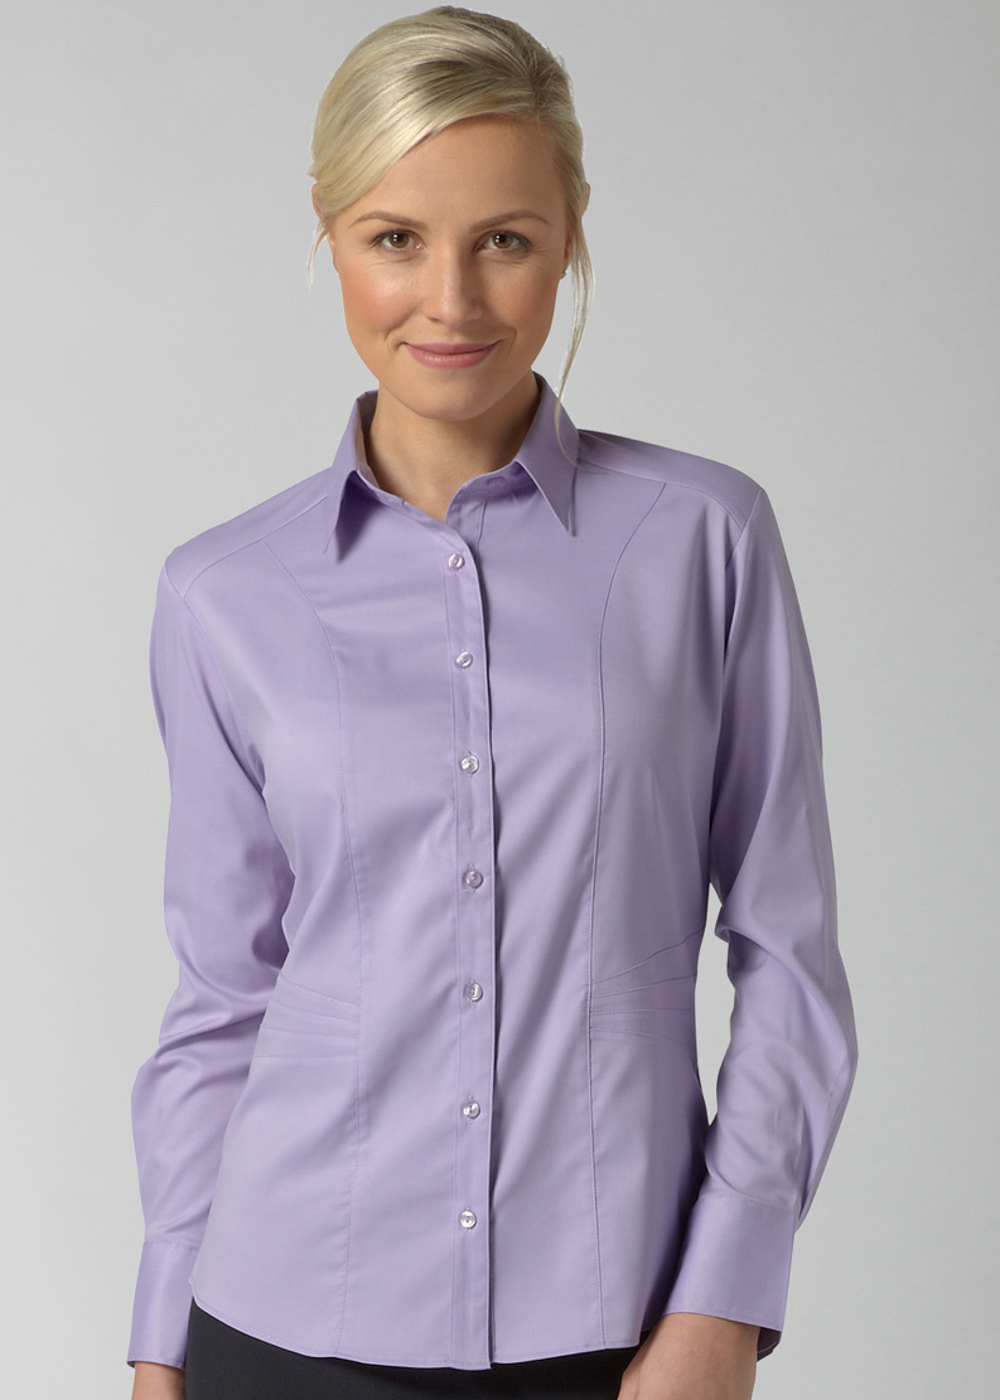 ANNABEL SS - Side Panel Detail Cotton Touch Stretch blouse